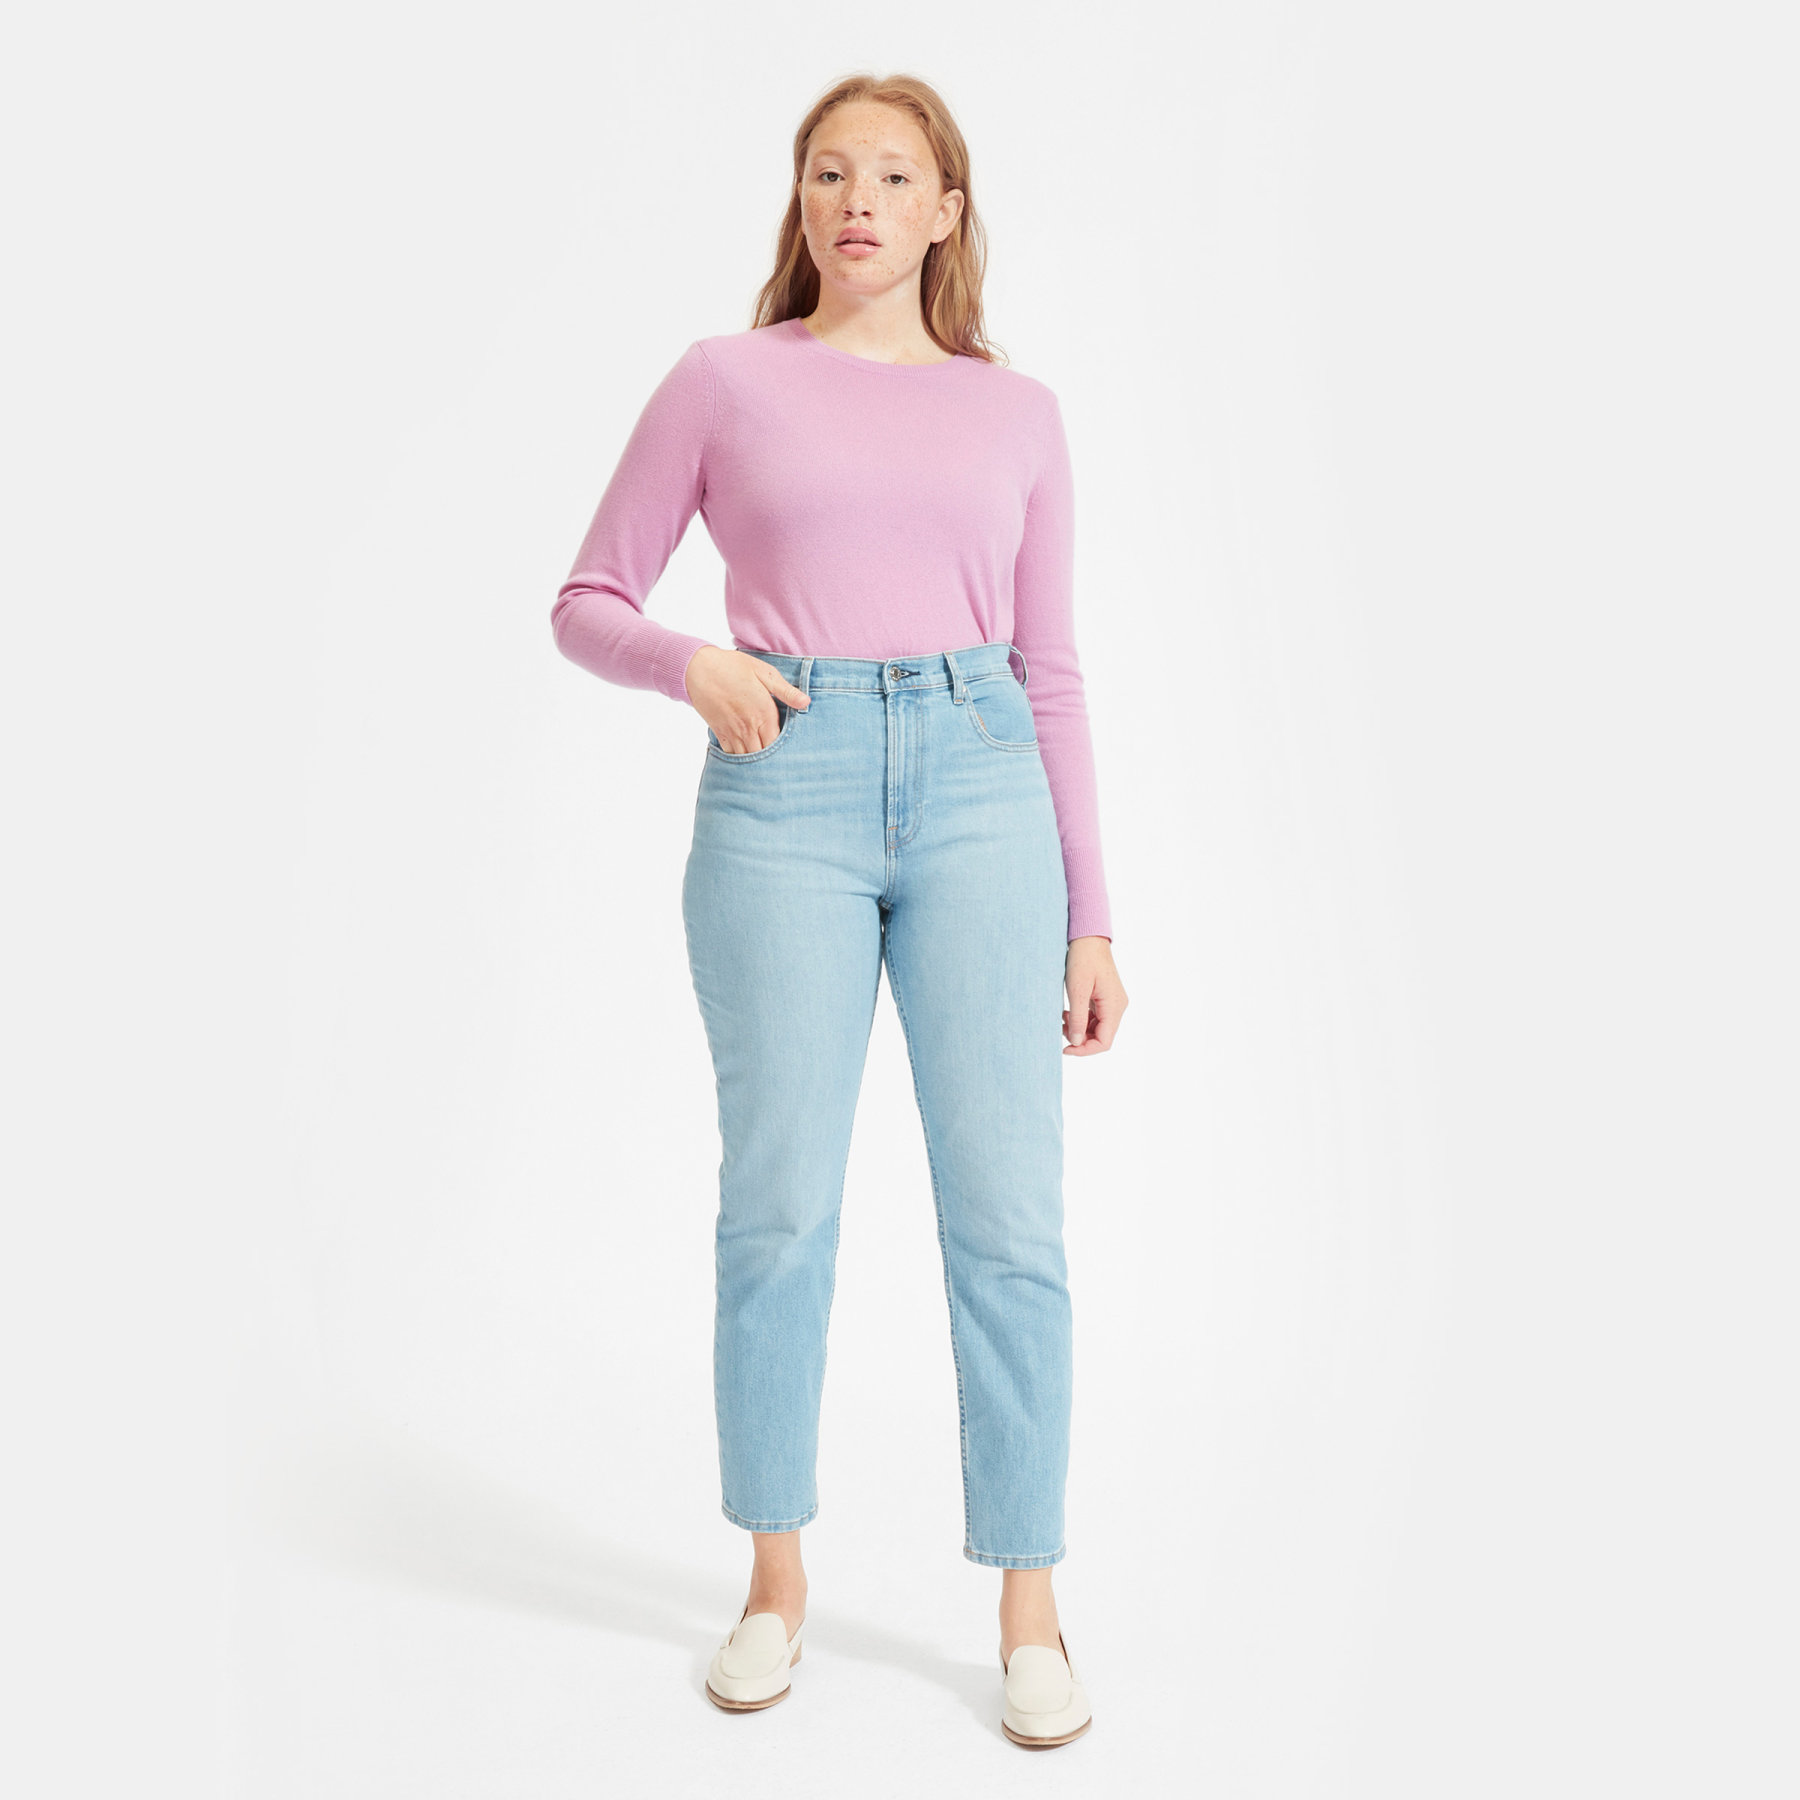 woman wearing everlane cashmere crew sweater in pink